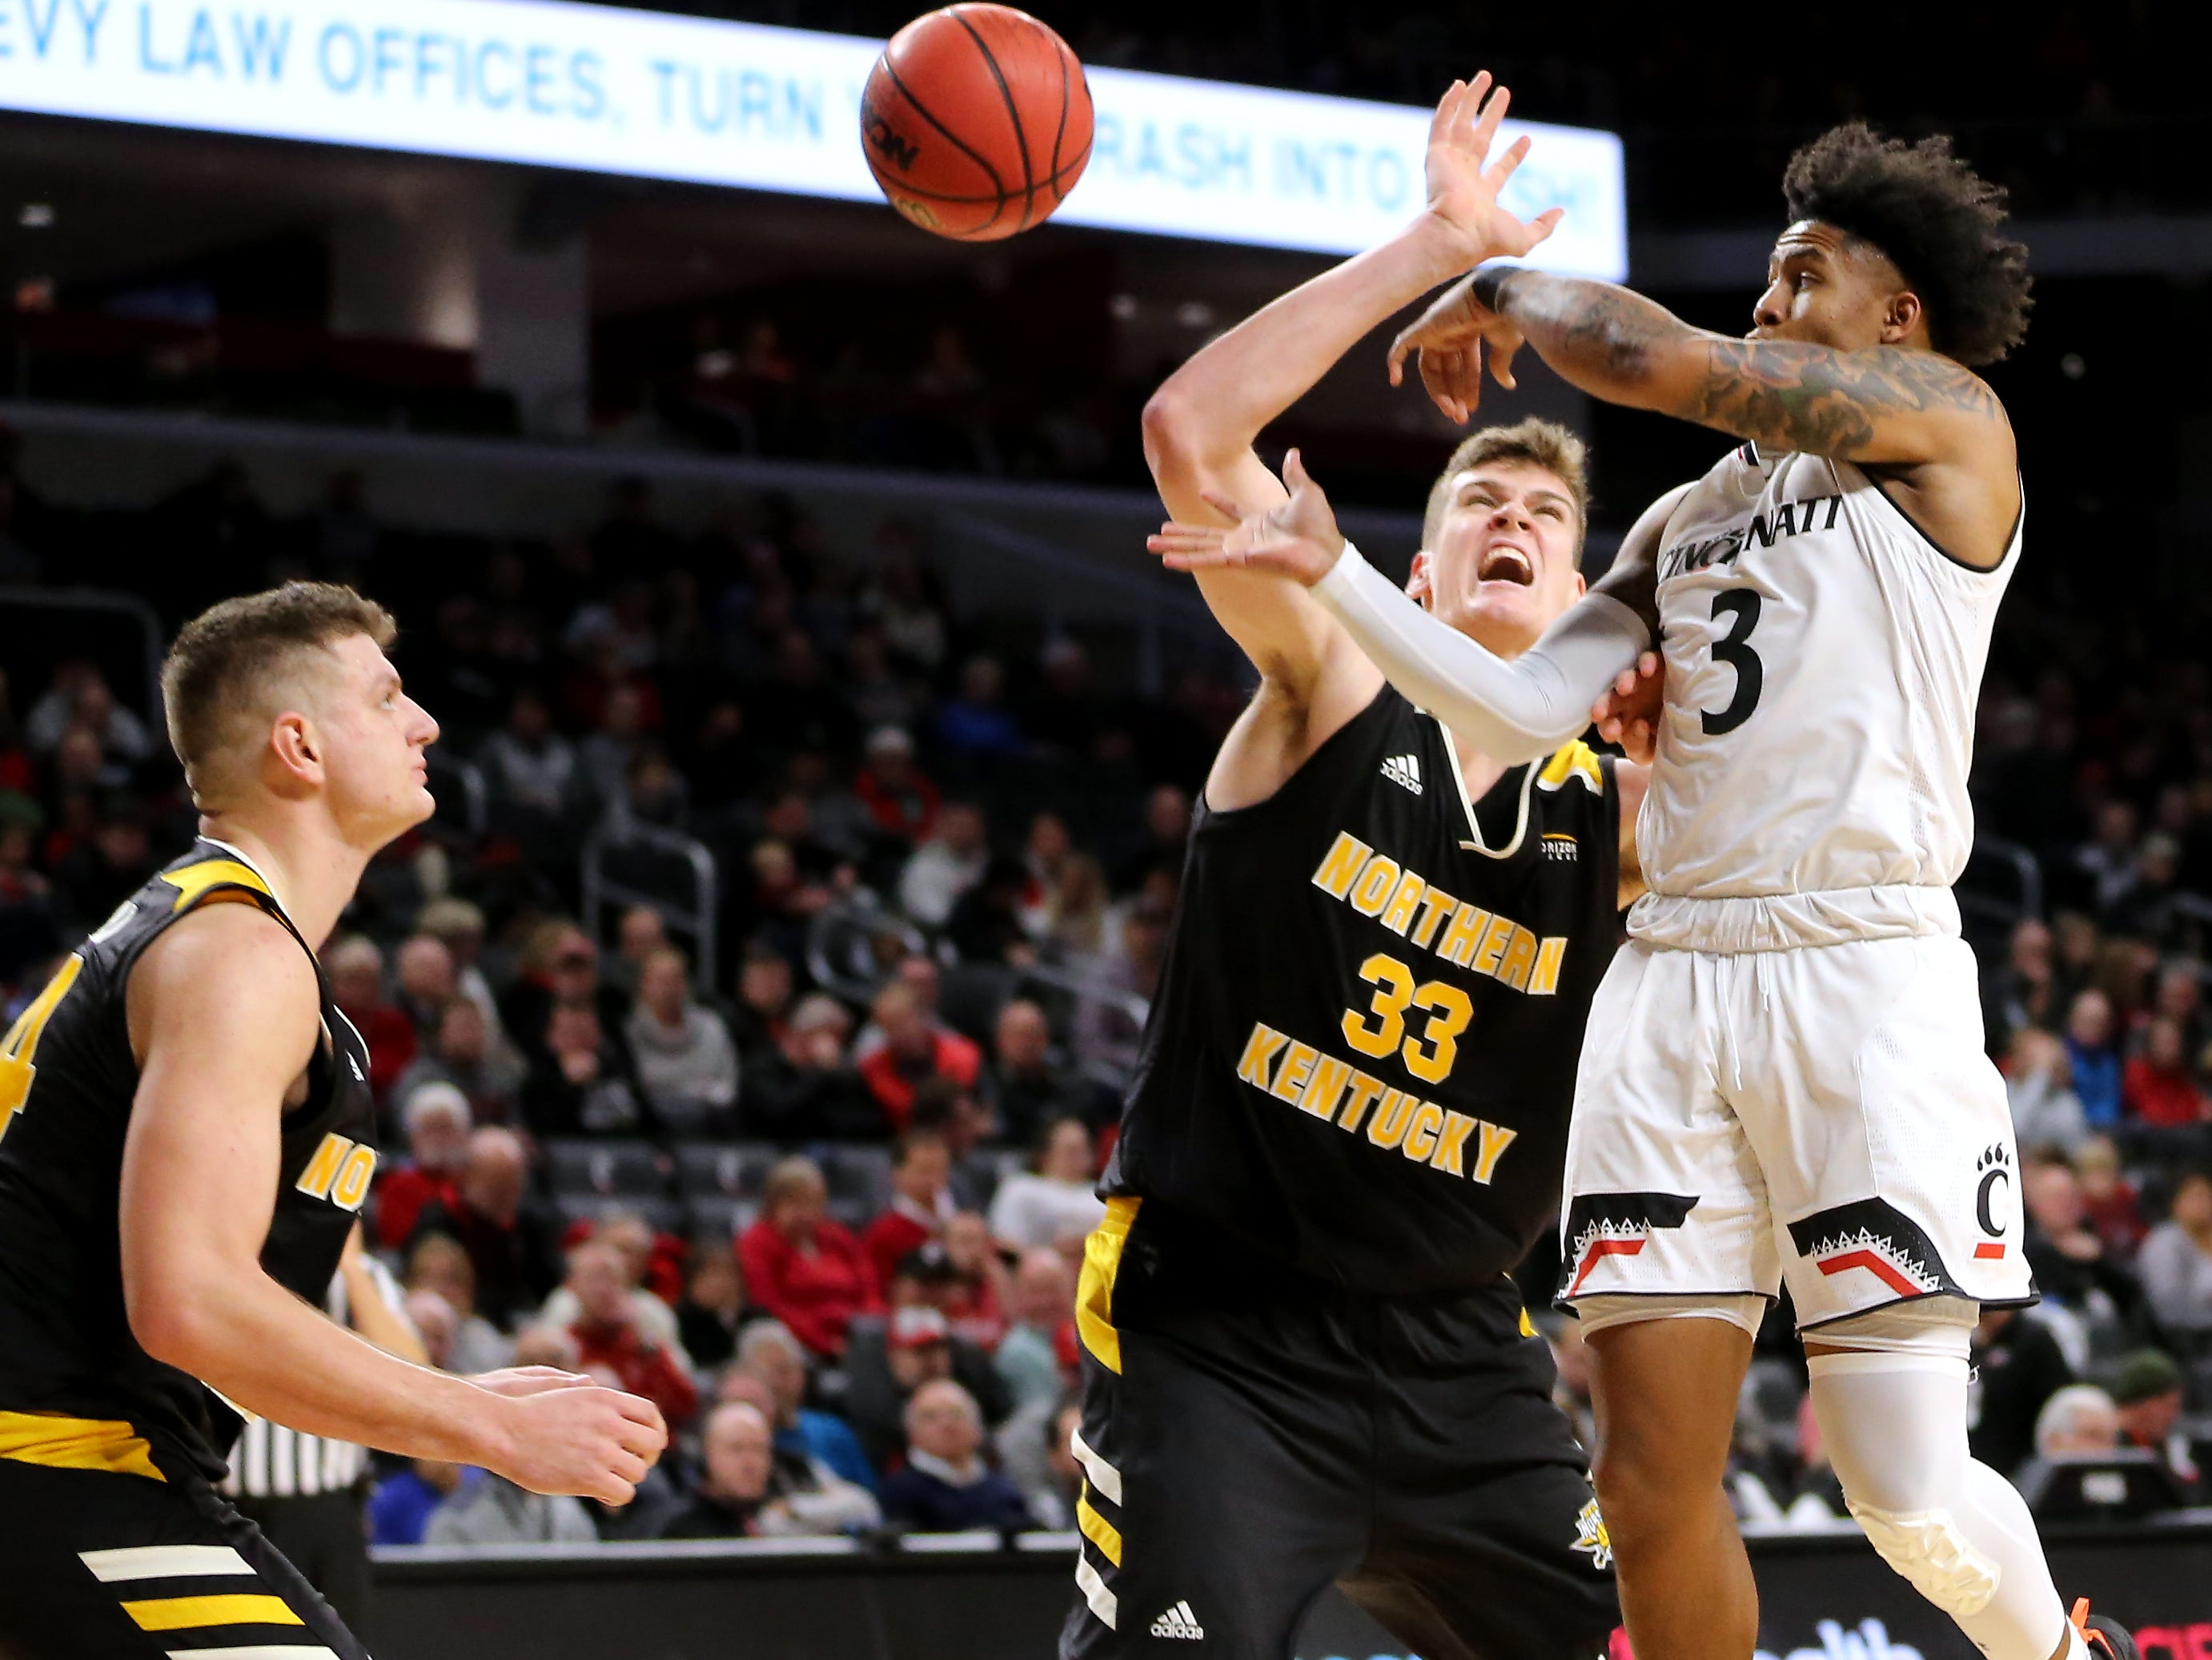 Cincinnati Bearcats guard Justin Jenifer (3) passes the ball out of the paint as Northern Kentucky Norse center Chris Vogt (33) defends in the second half of an NCAA college basketball game, Tuesday, Dec. 4, 2018, at Fifth Third Arena in Cincinnati.